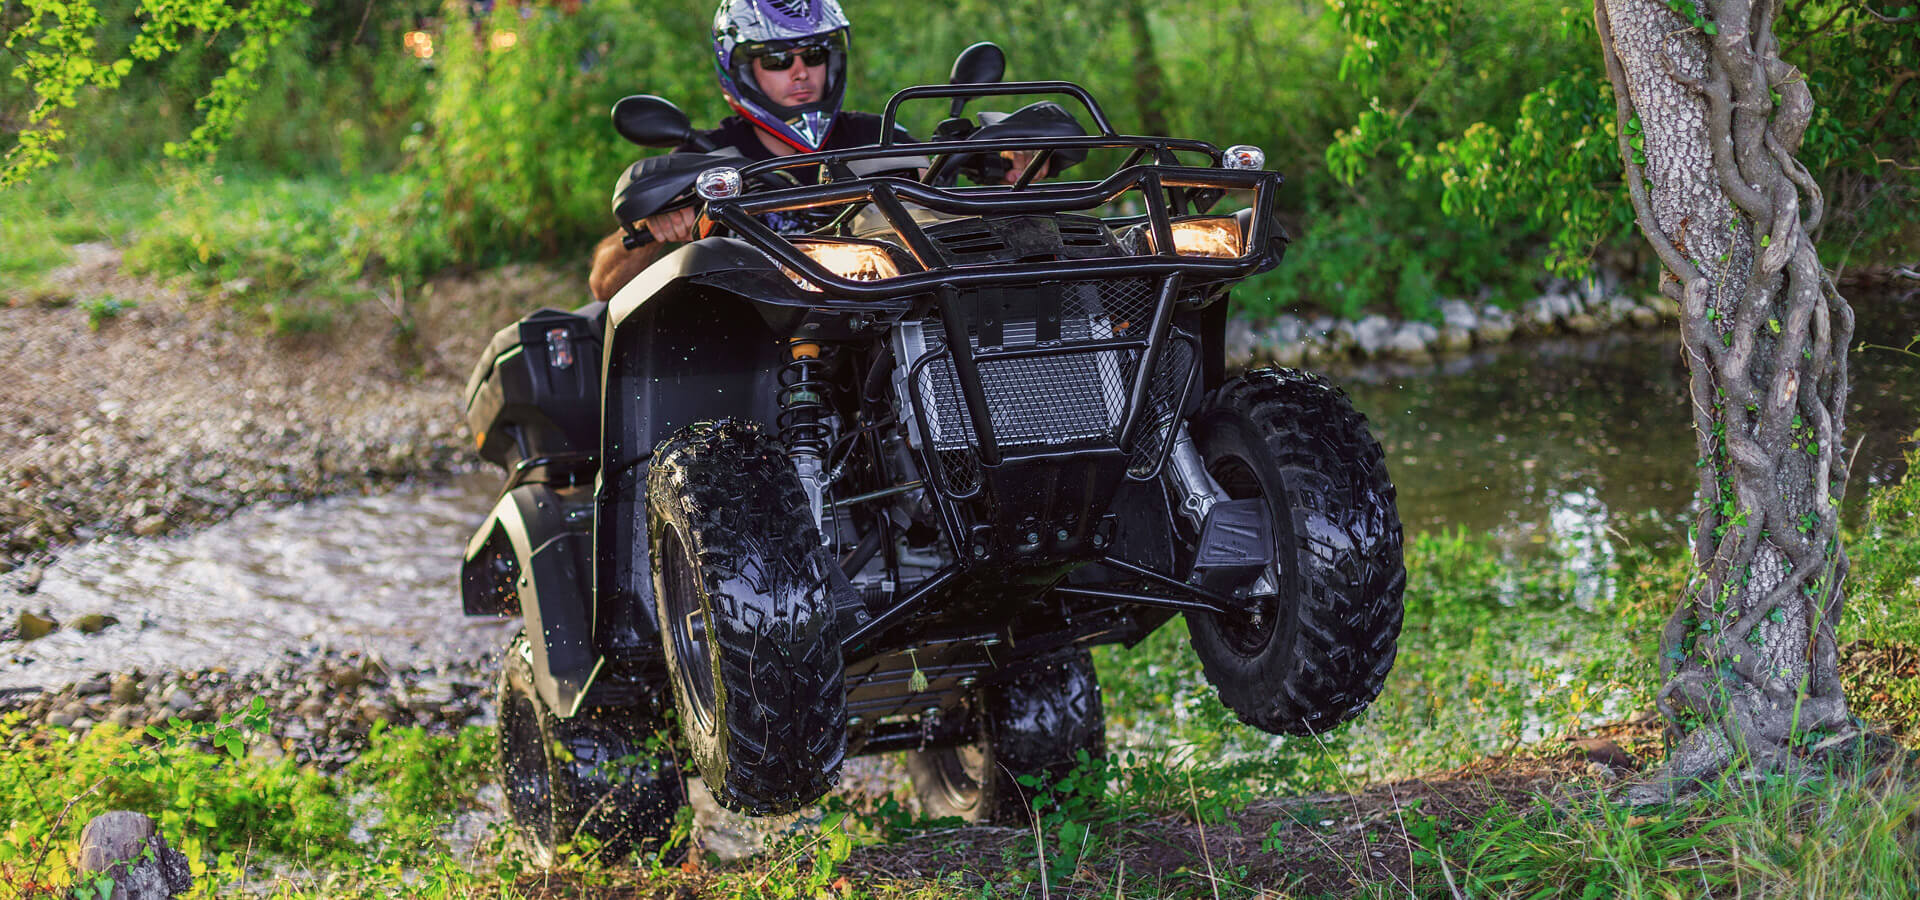 QUAD EXPEDITION TOUR